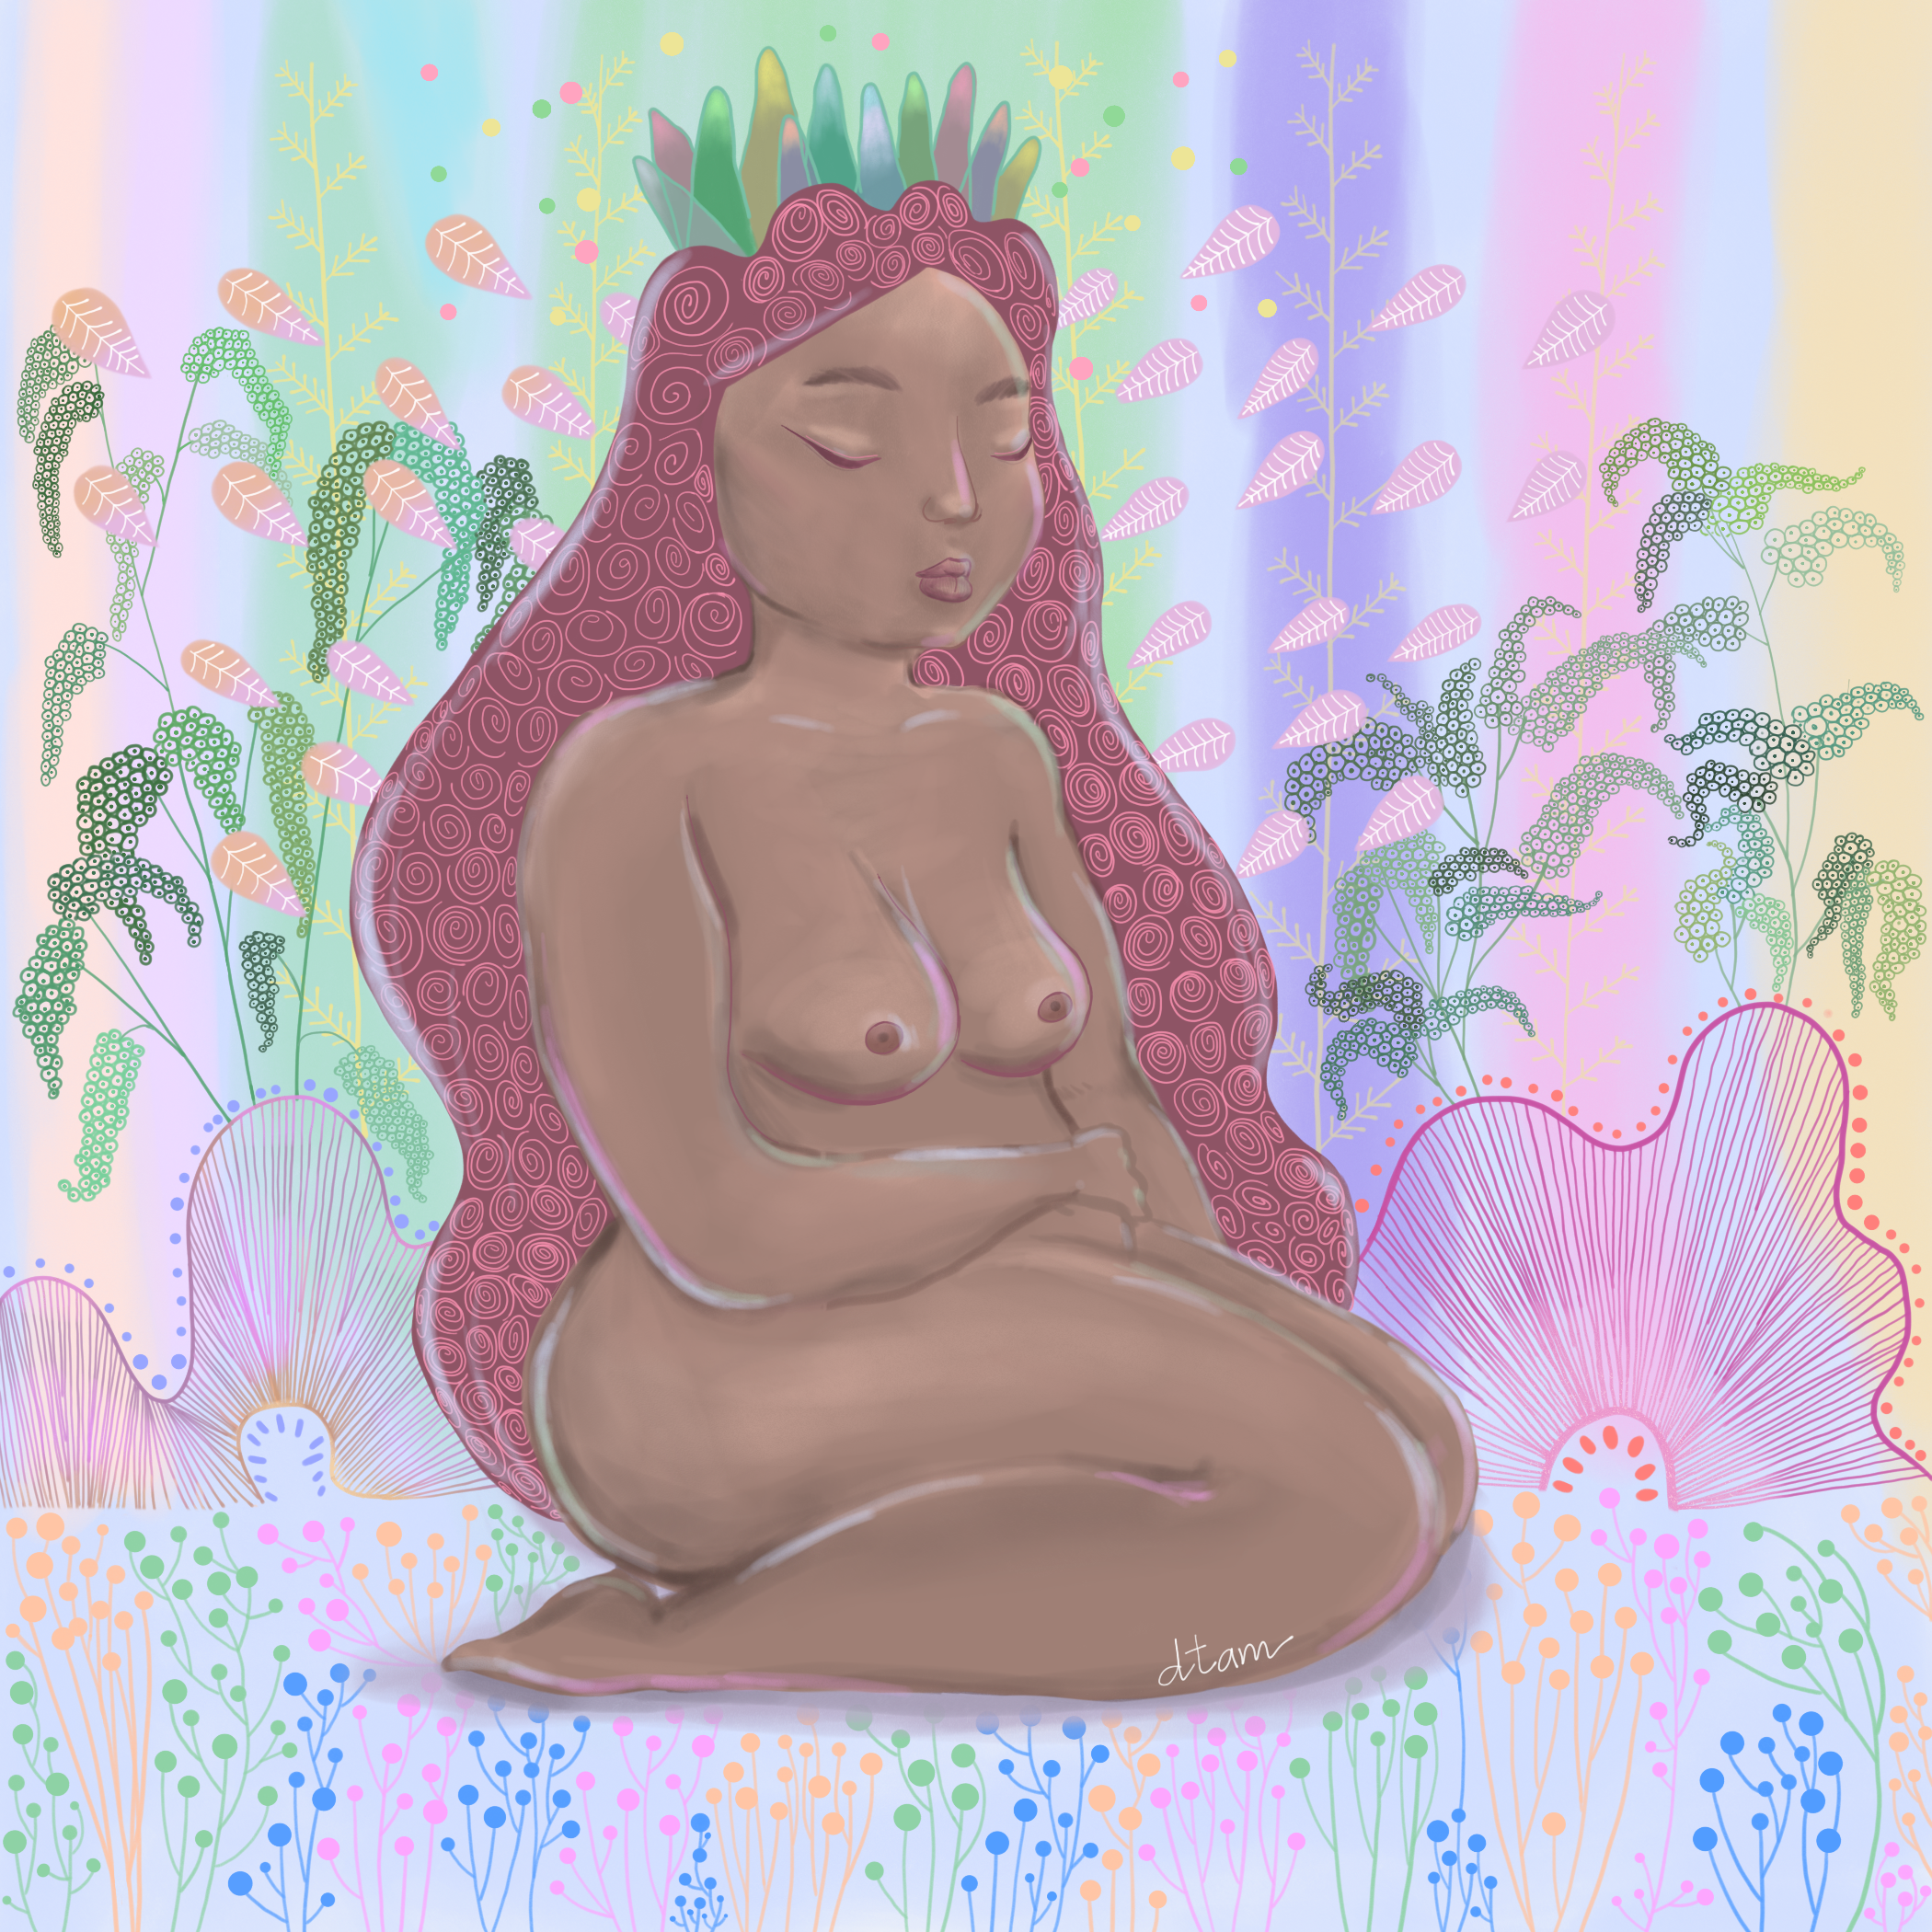 Pastel Lady -   digital, 2018